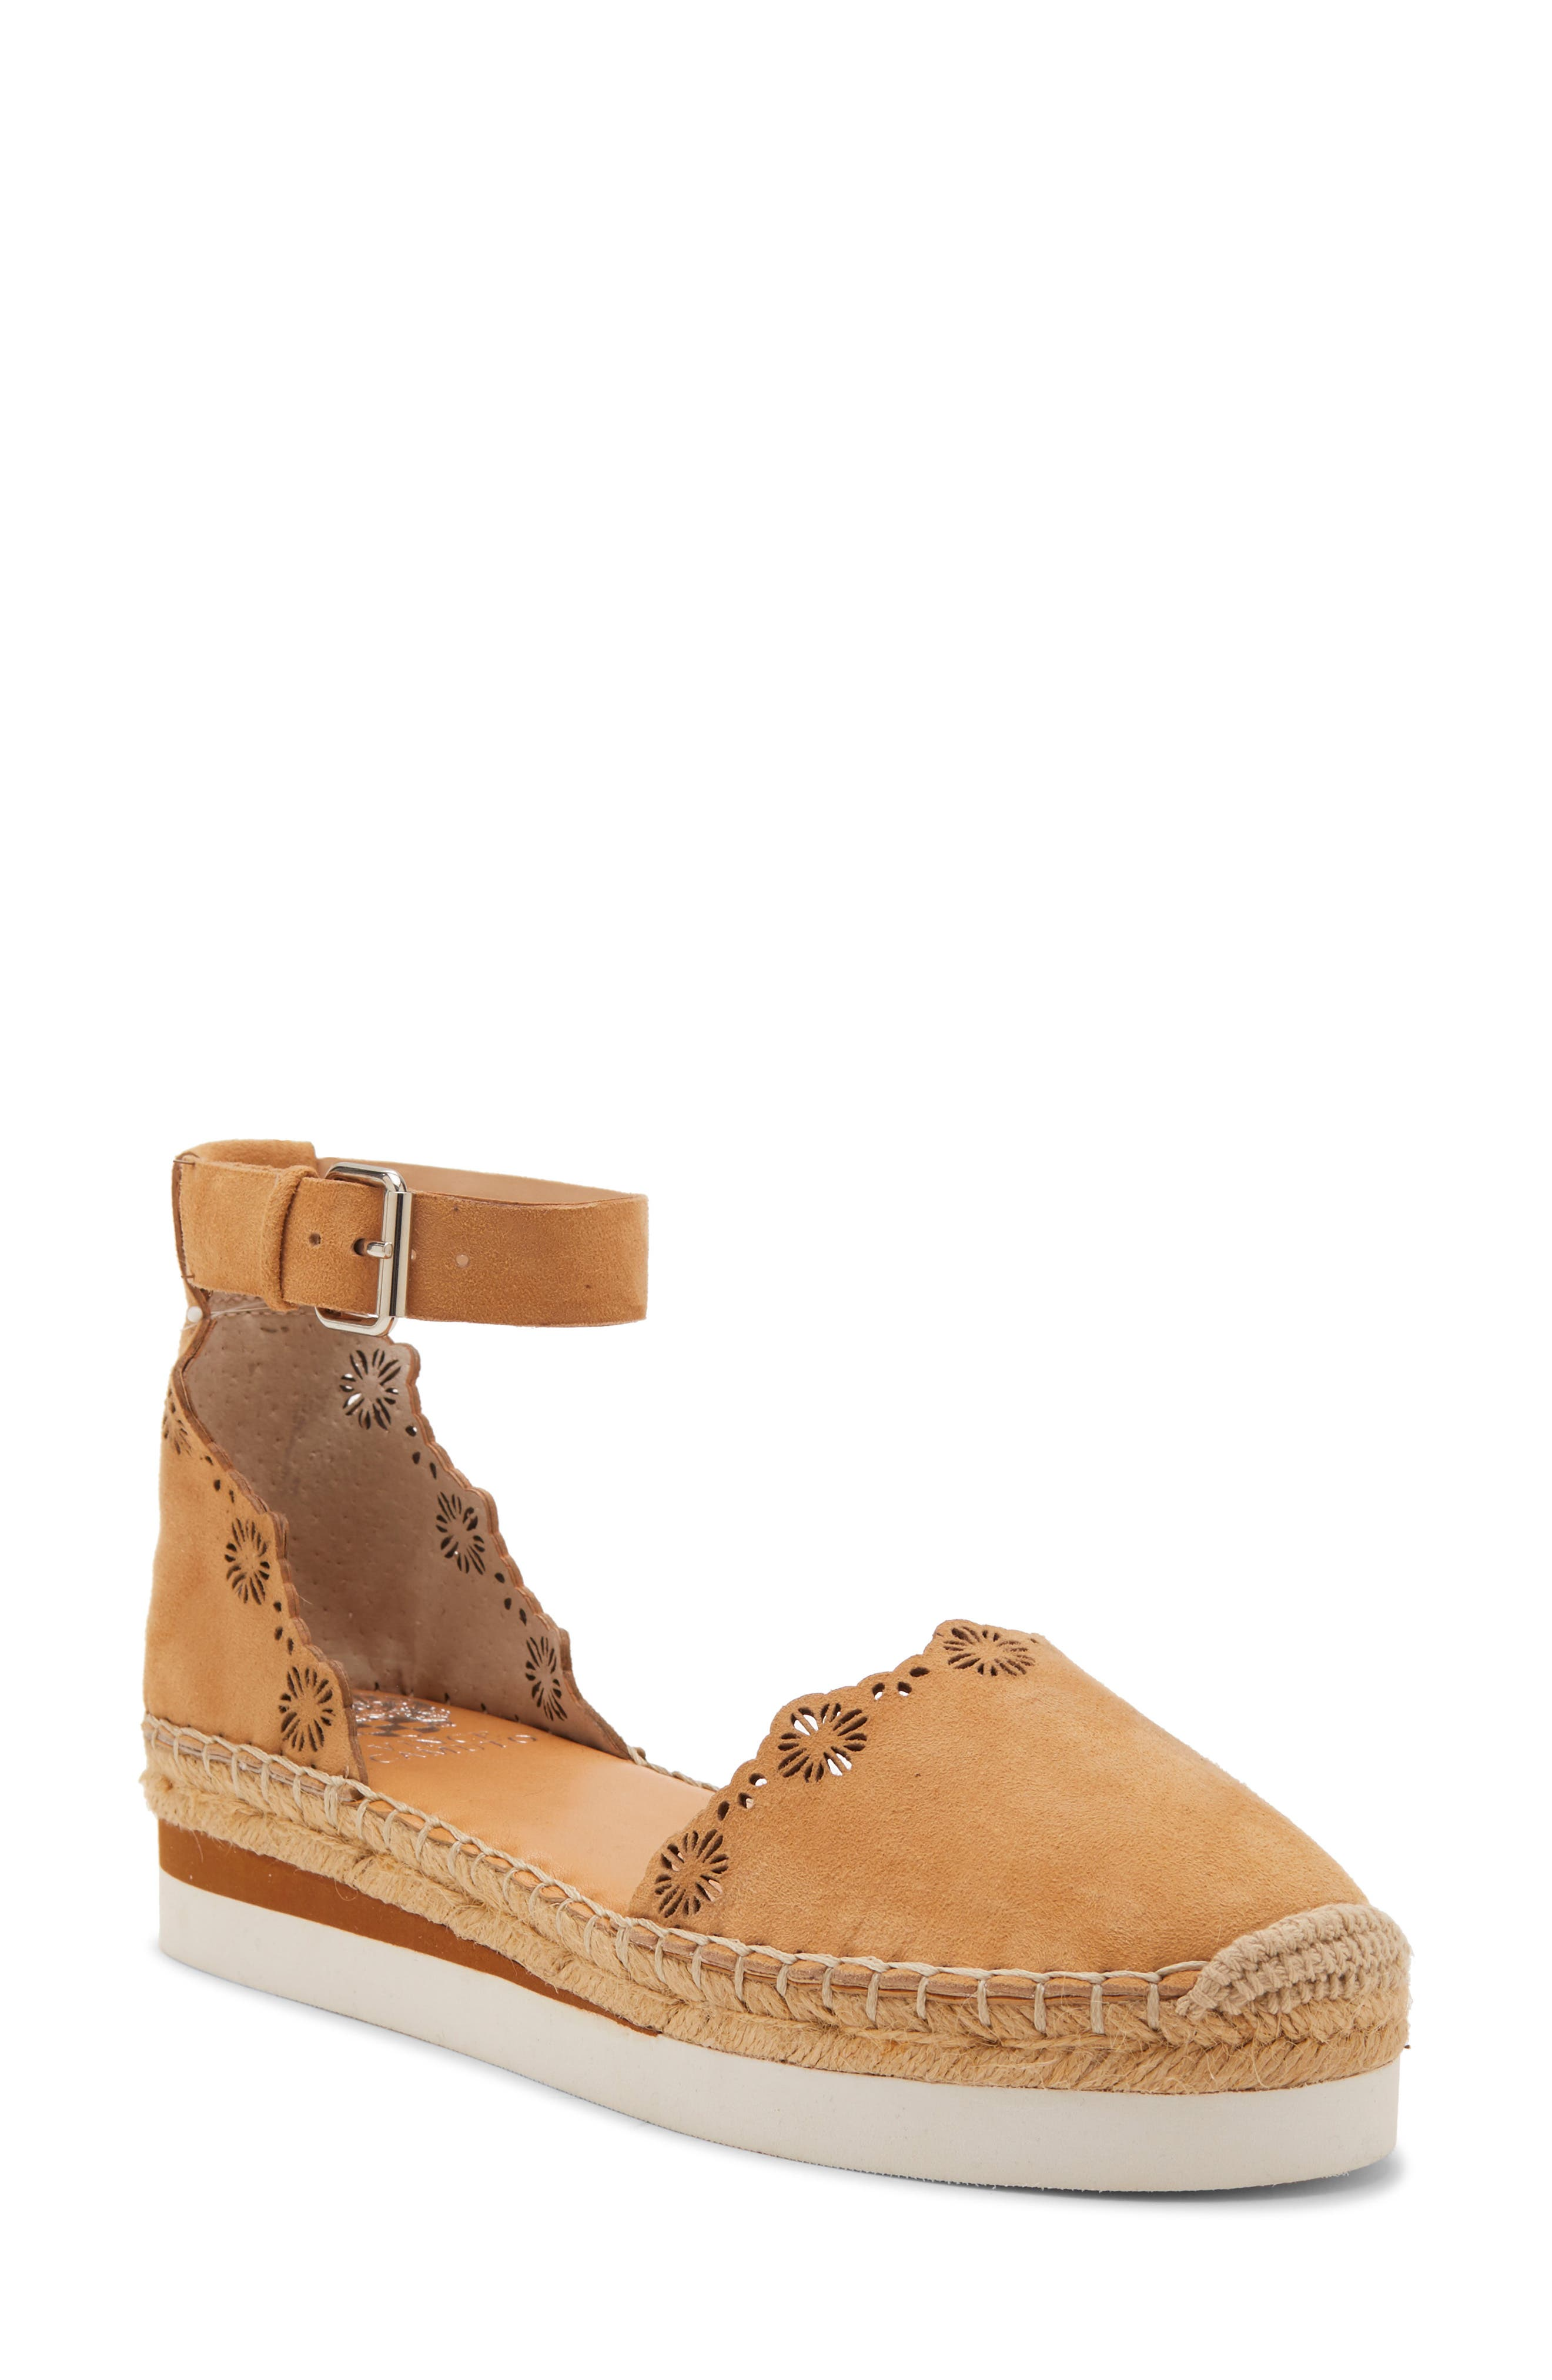 Vince Camuto Breshan Ankle Strap Espadrille Wedge, Brown